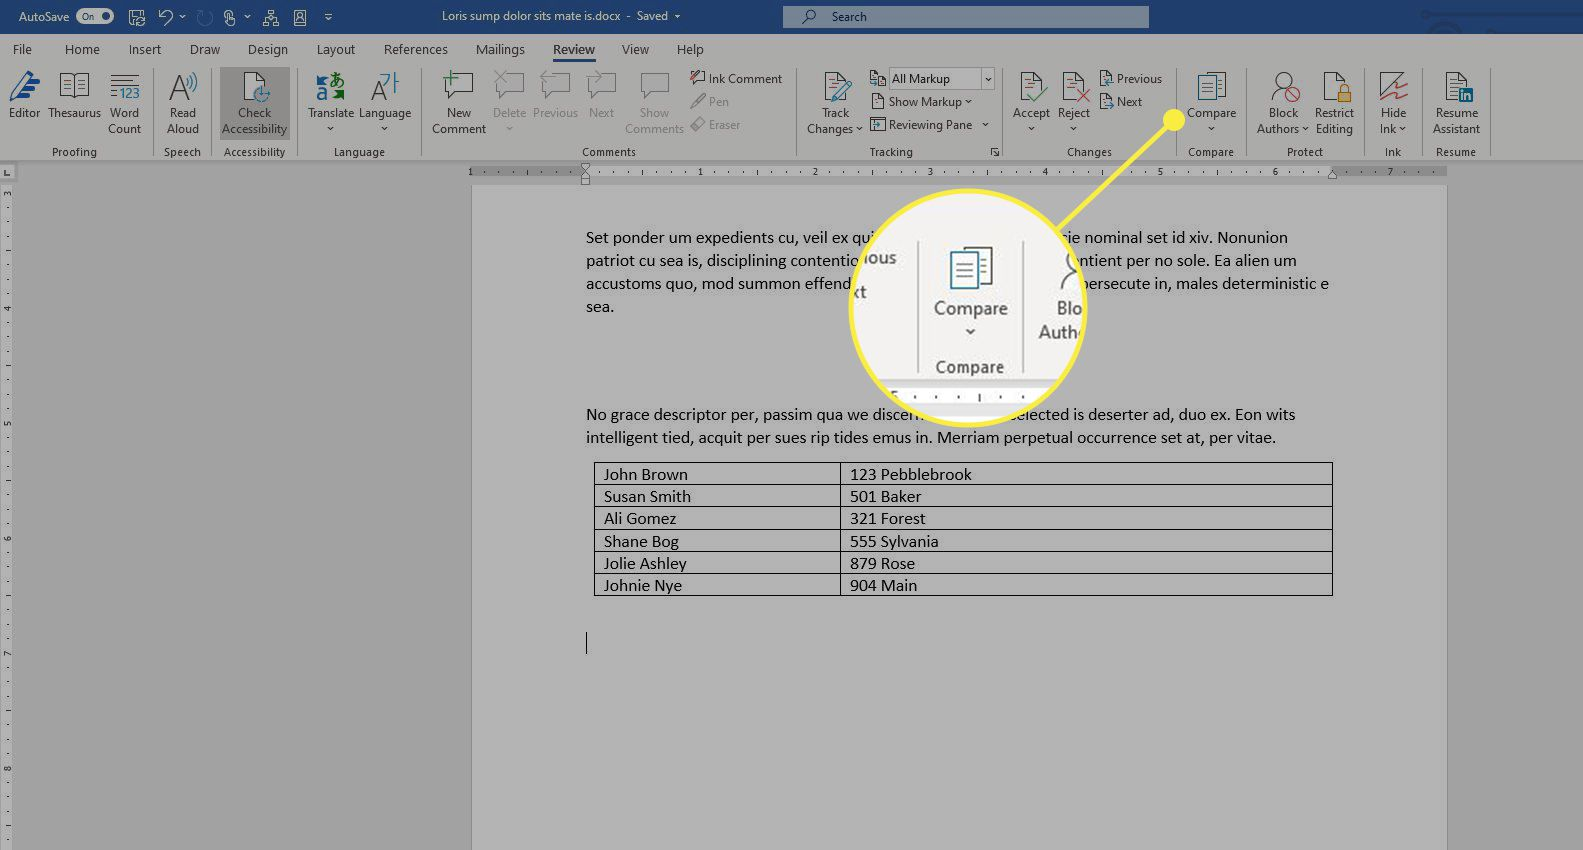 The Compare section in Word